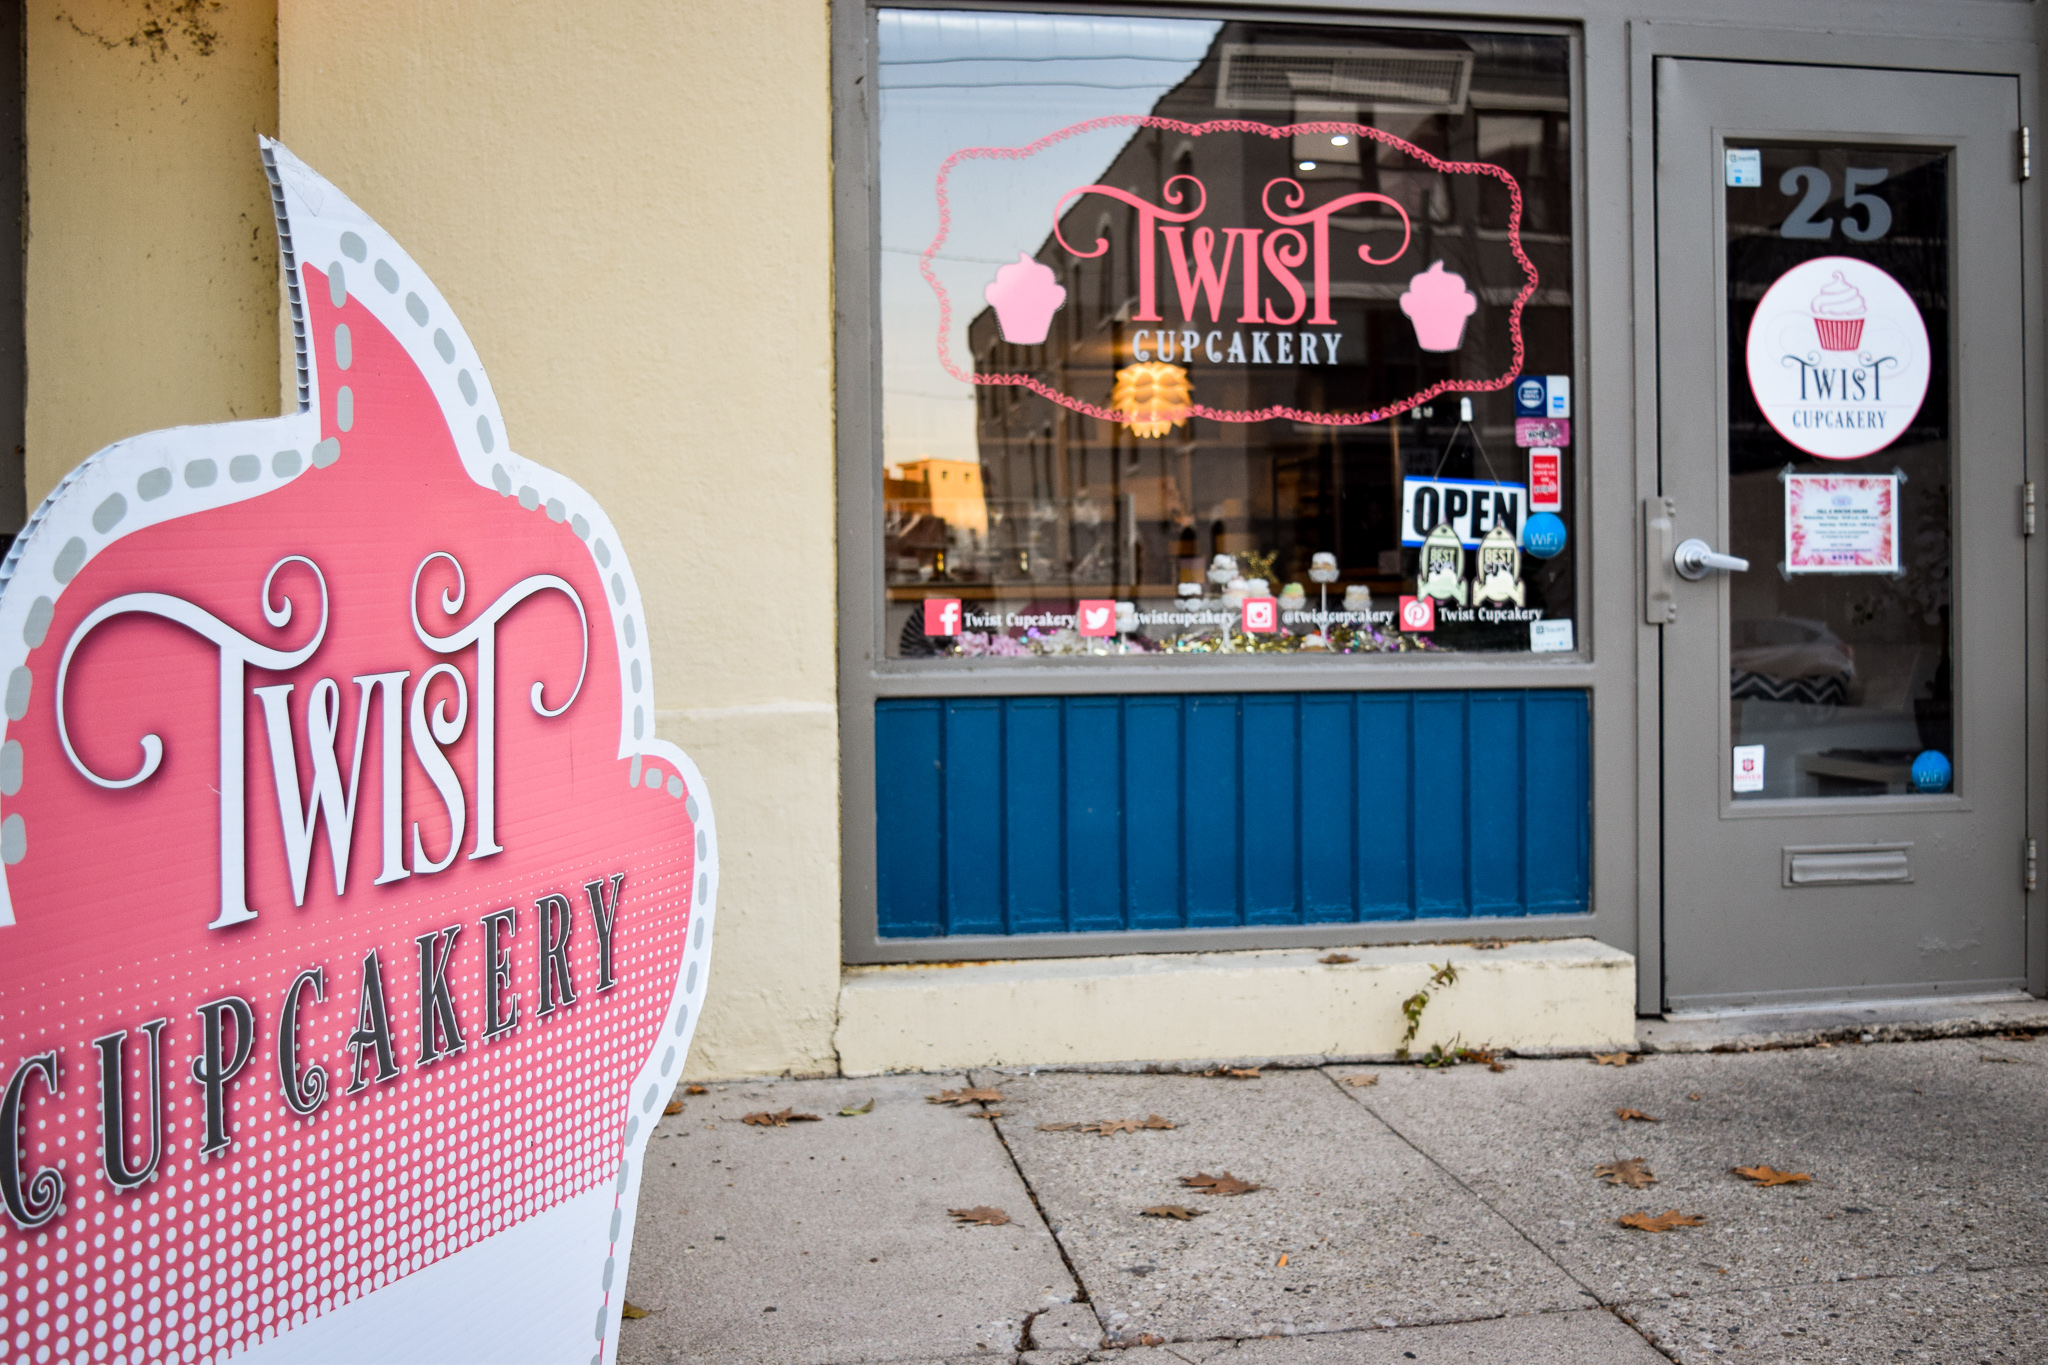 Twist Cupcakery | Photo by Jessica Fugett | The Wright State Guardian